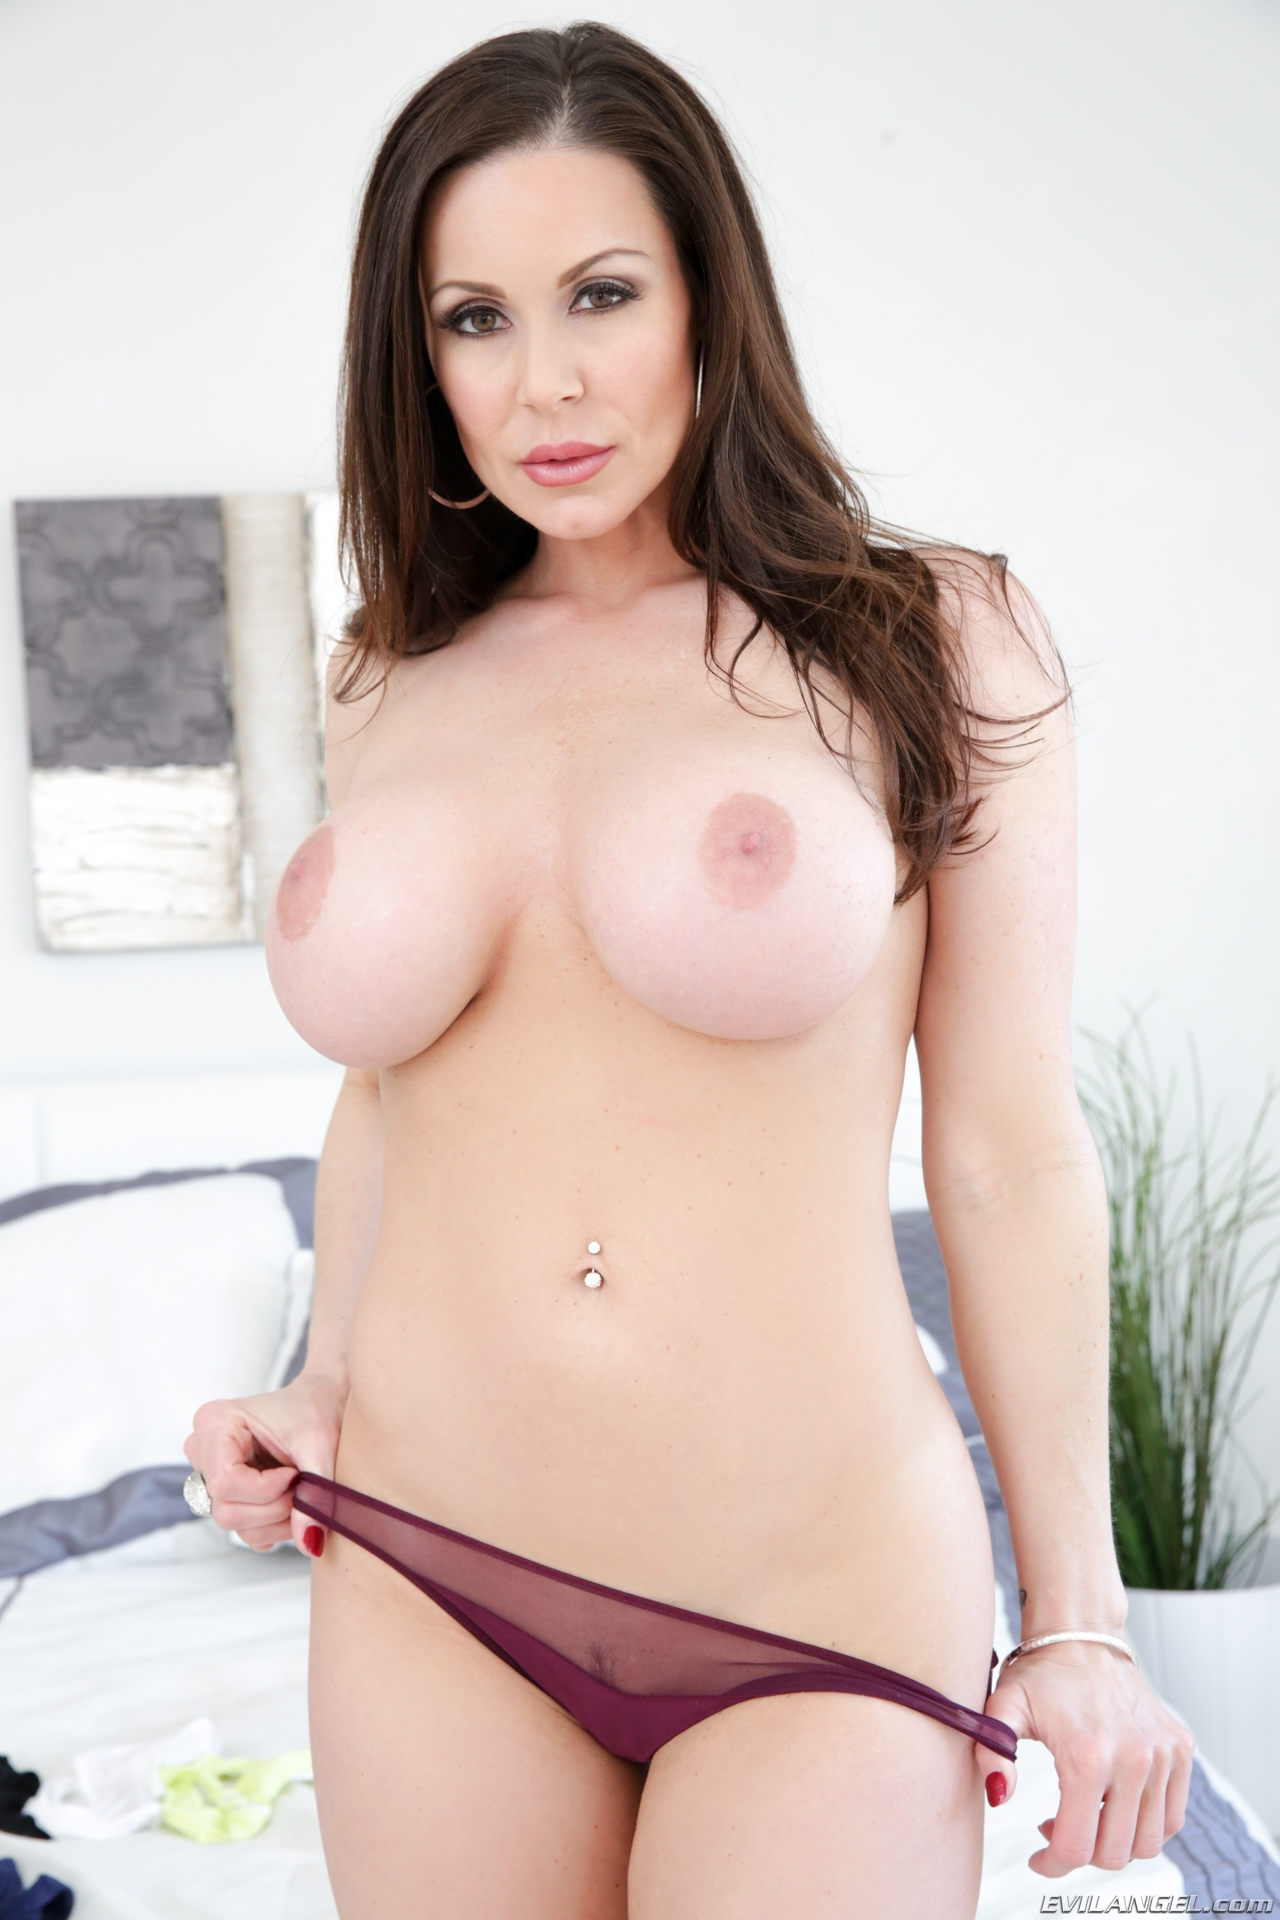 Kendra lust contact